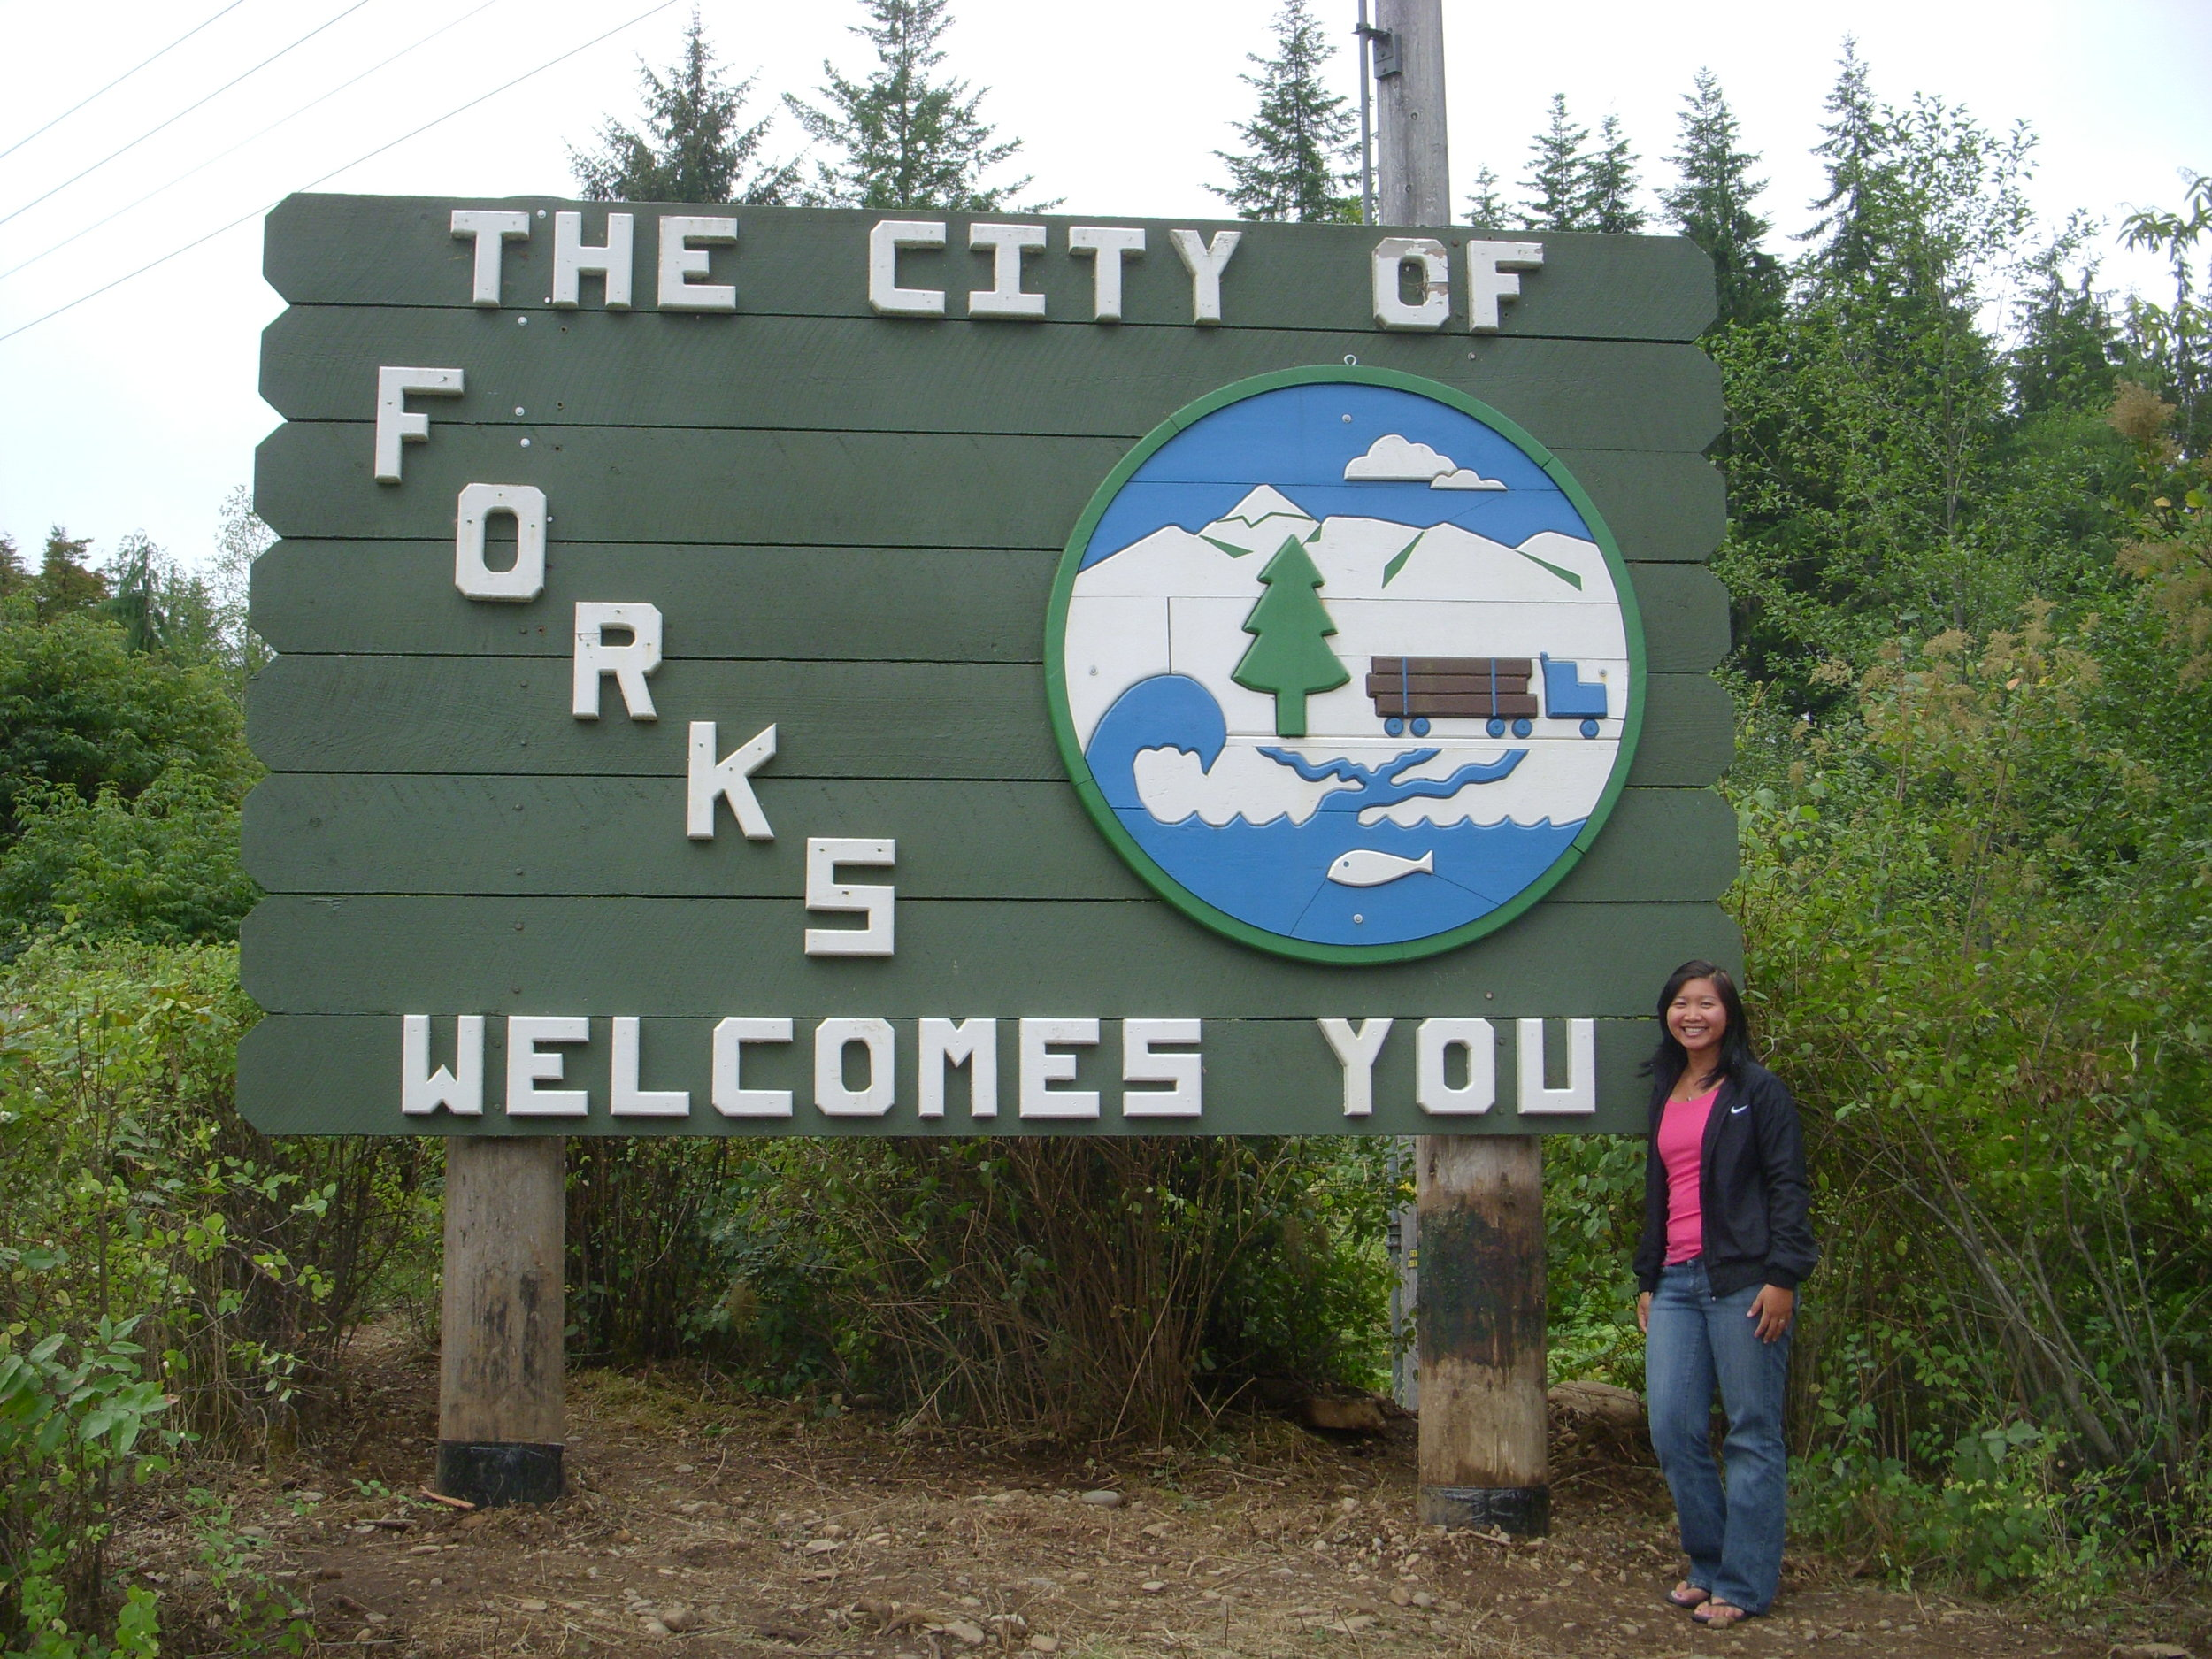 Off to forks